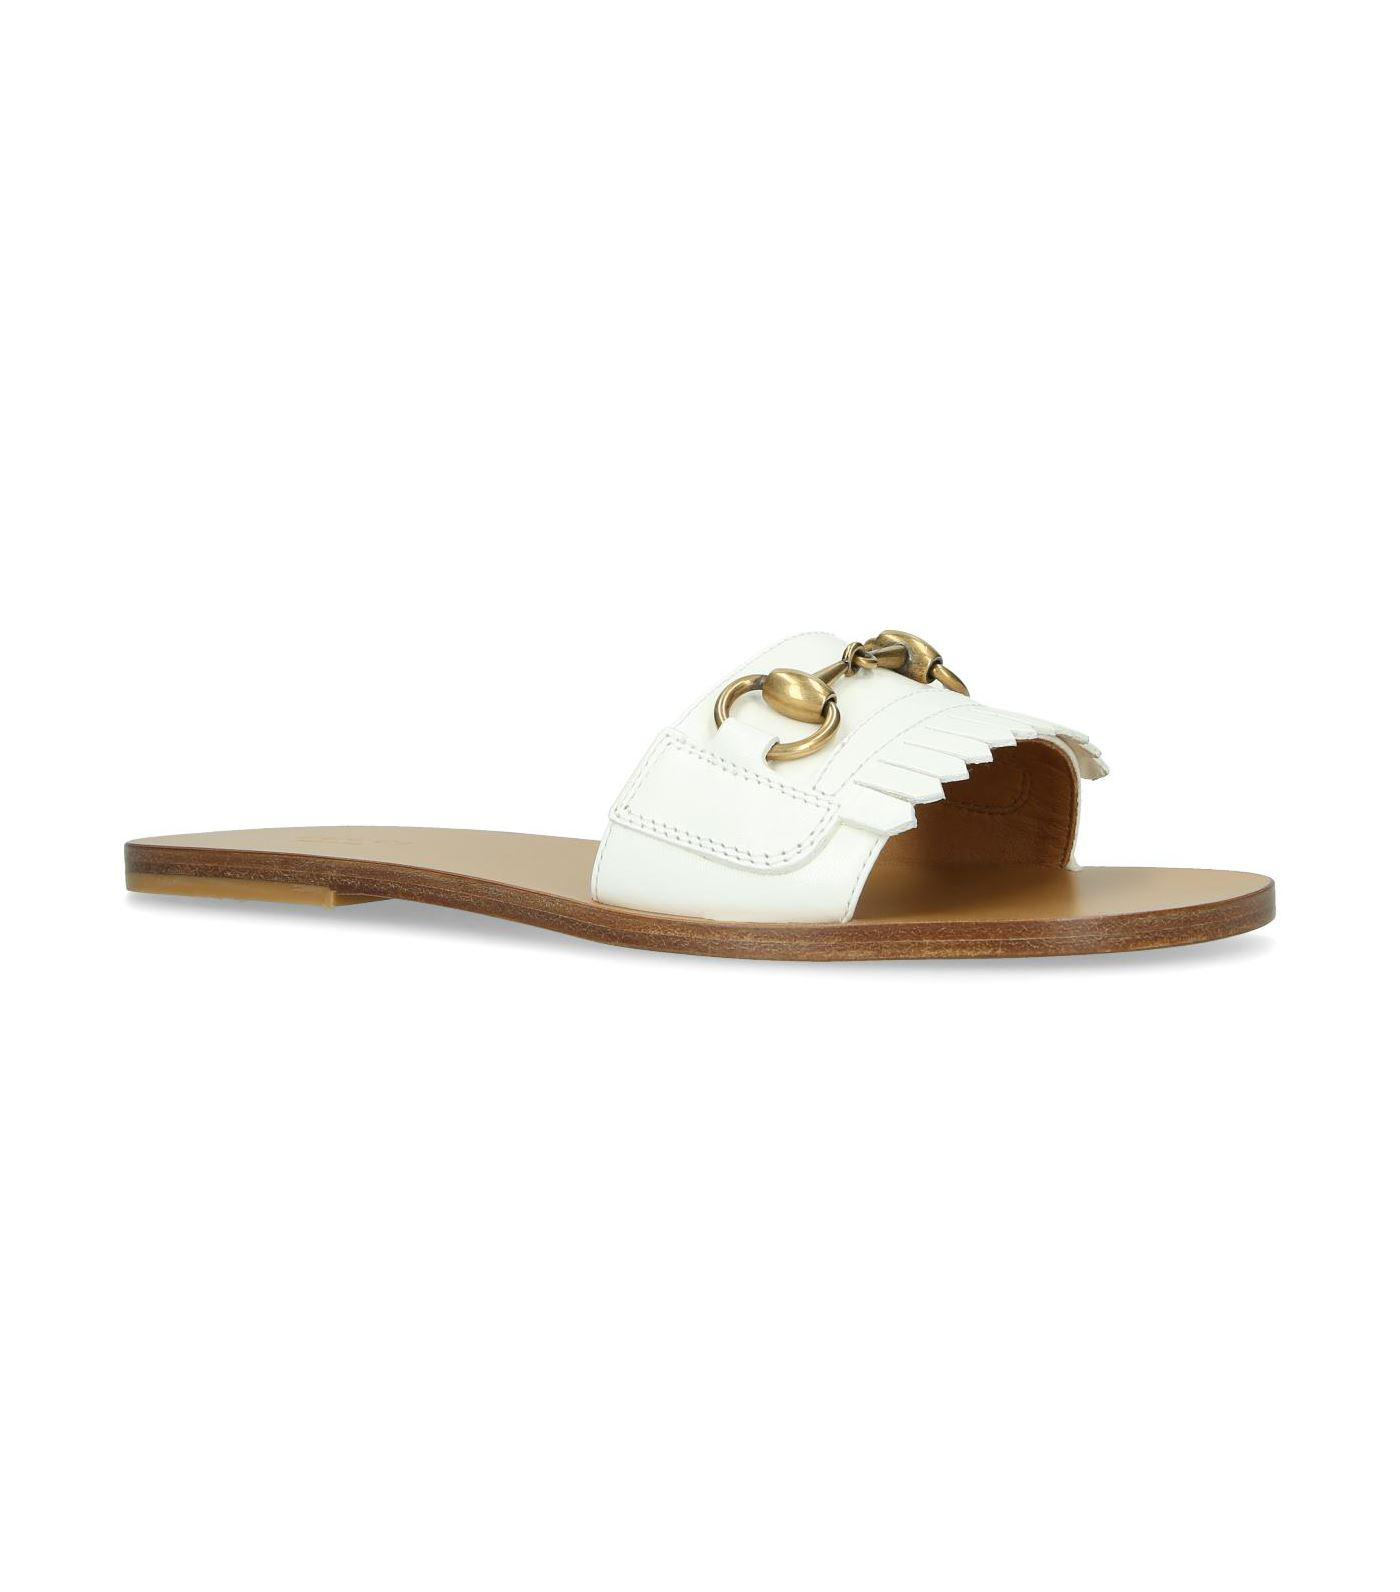 Gucci Pool sandals smooth leather Gem A6hUbs7